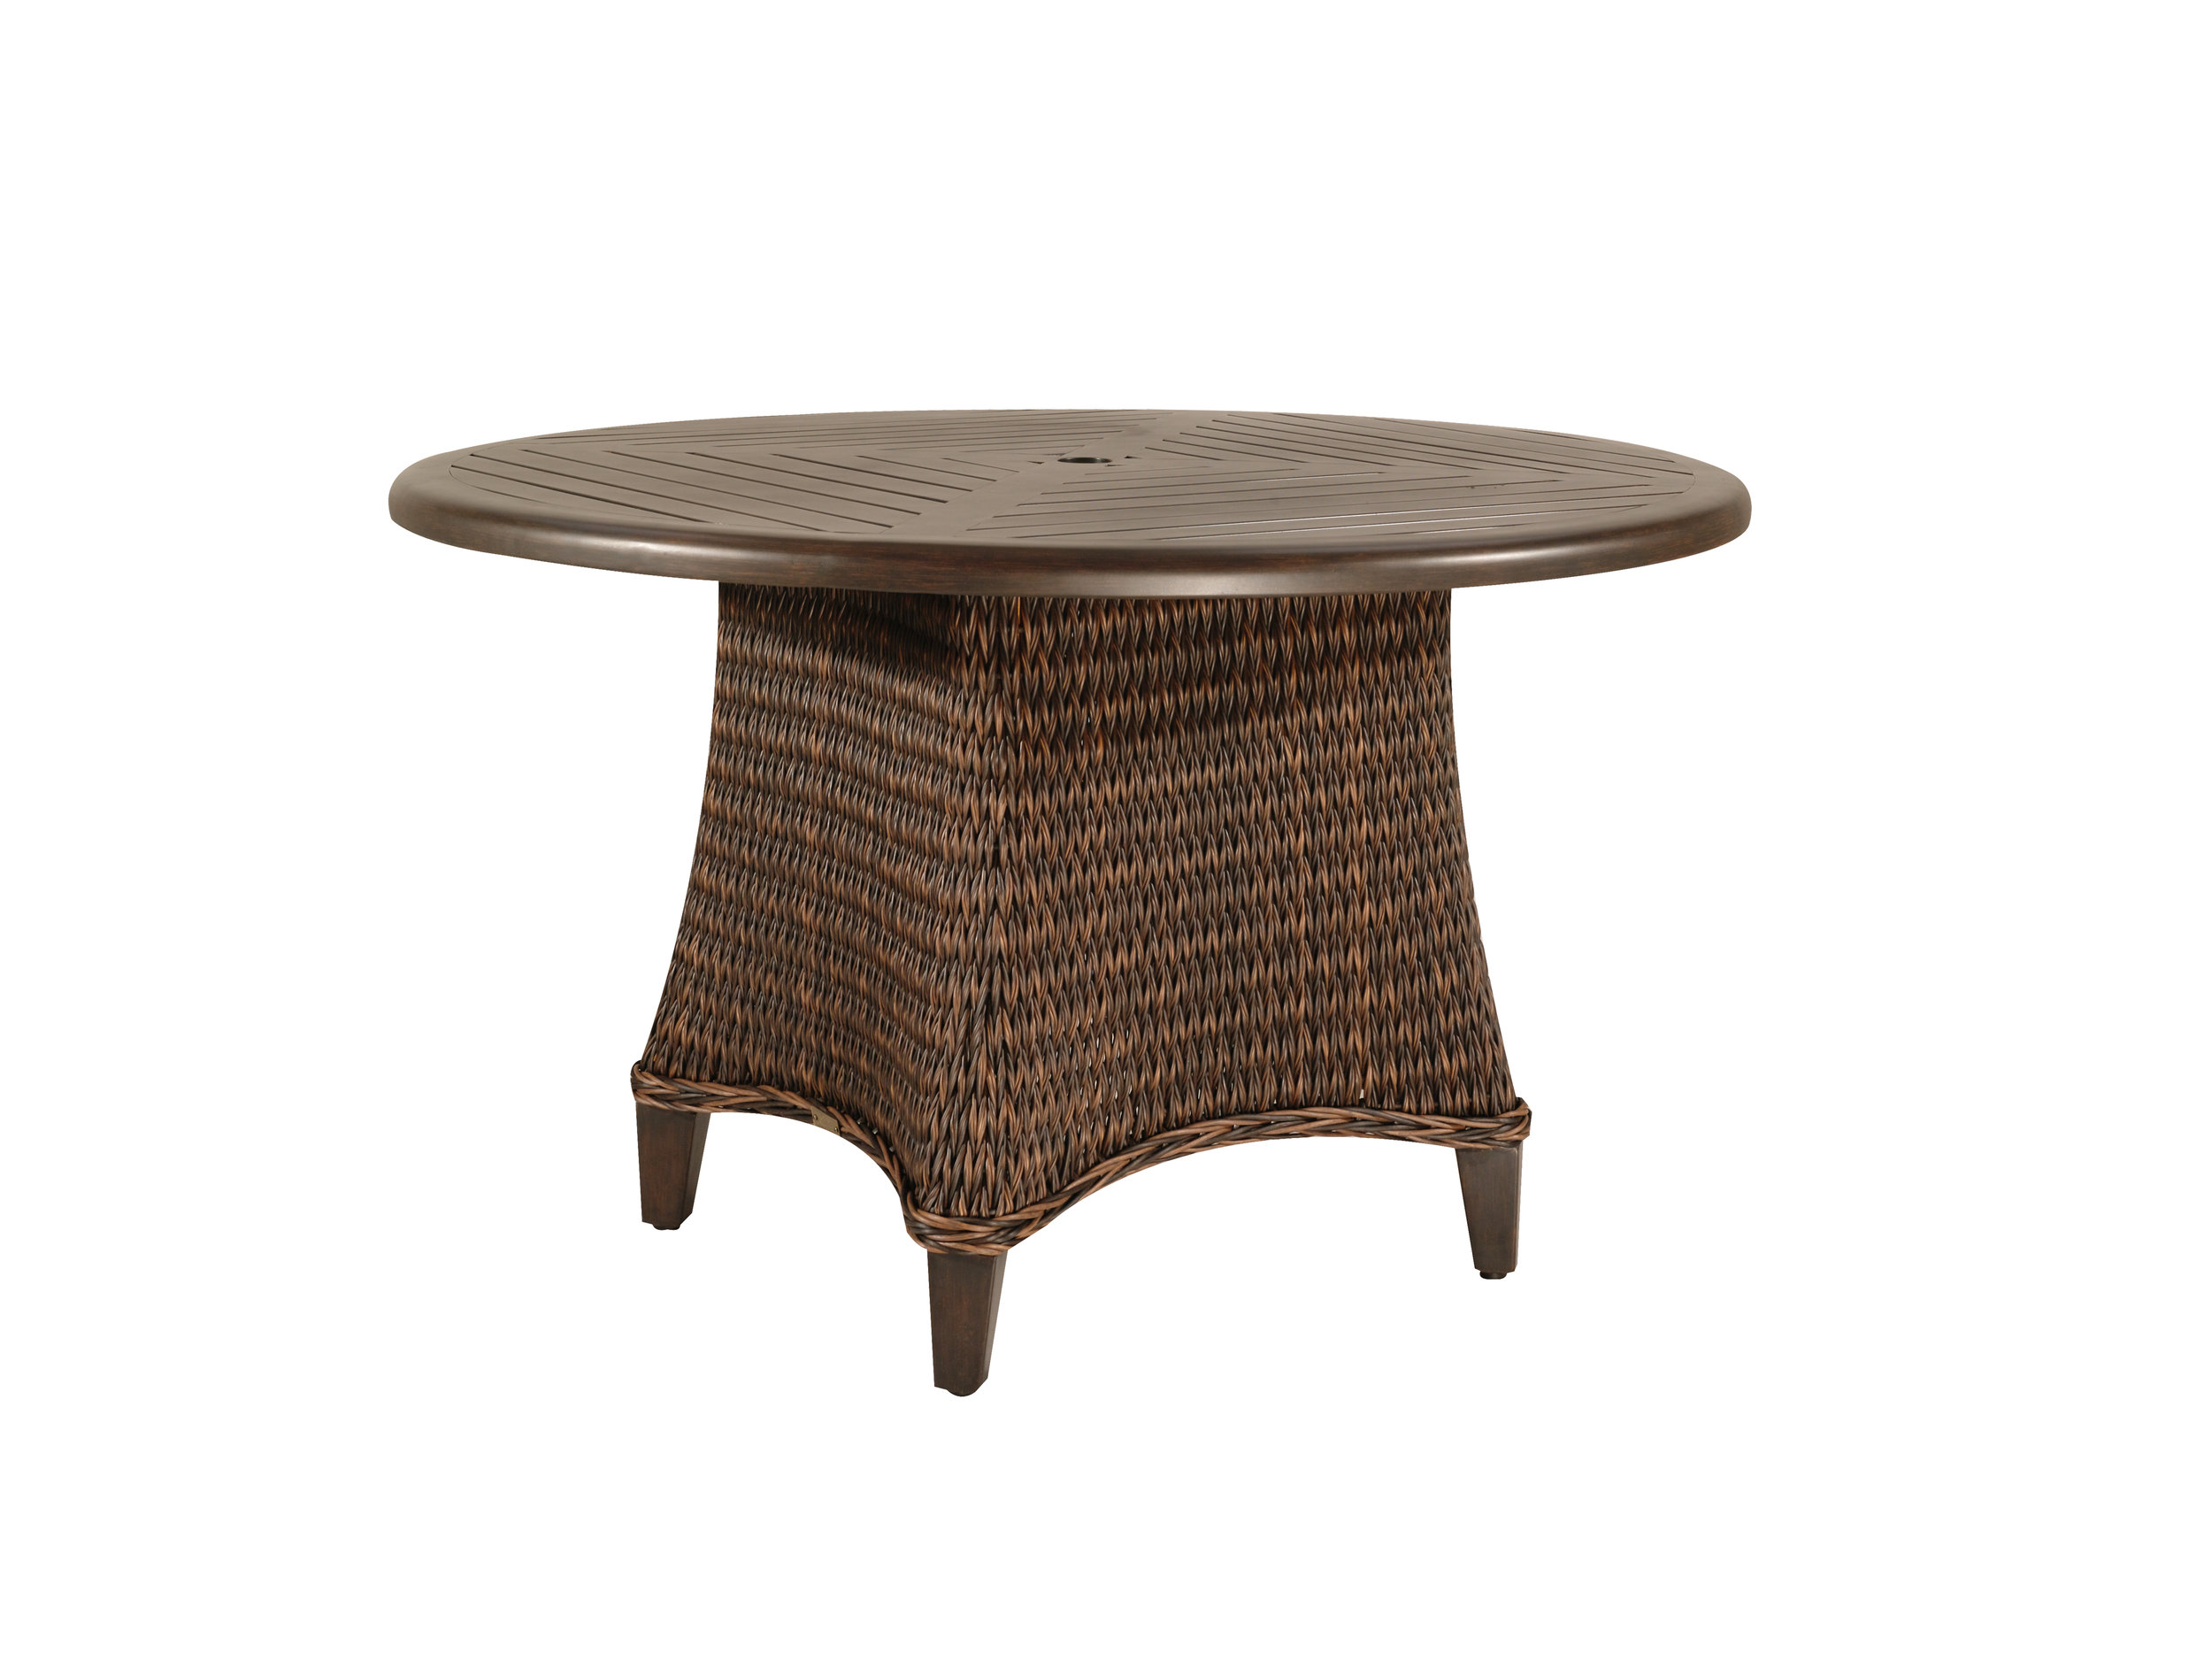 "973048B Monticello 48"" Dining Table Base   (Top : W-48R Farnham Aluminum Faux Wood Top)  25.3"" x 25.3"" x 27.5"""